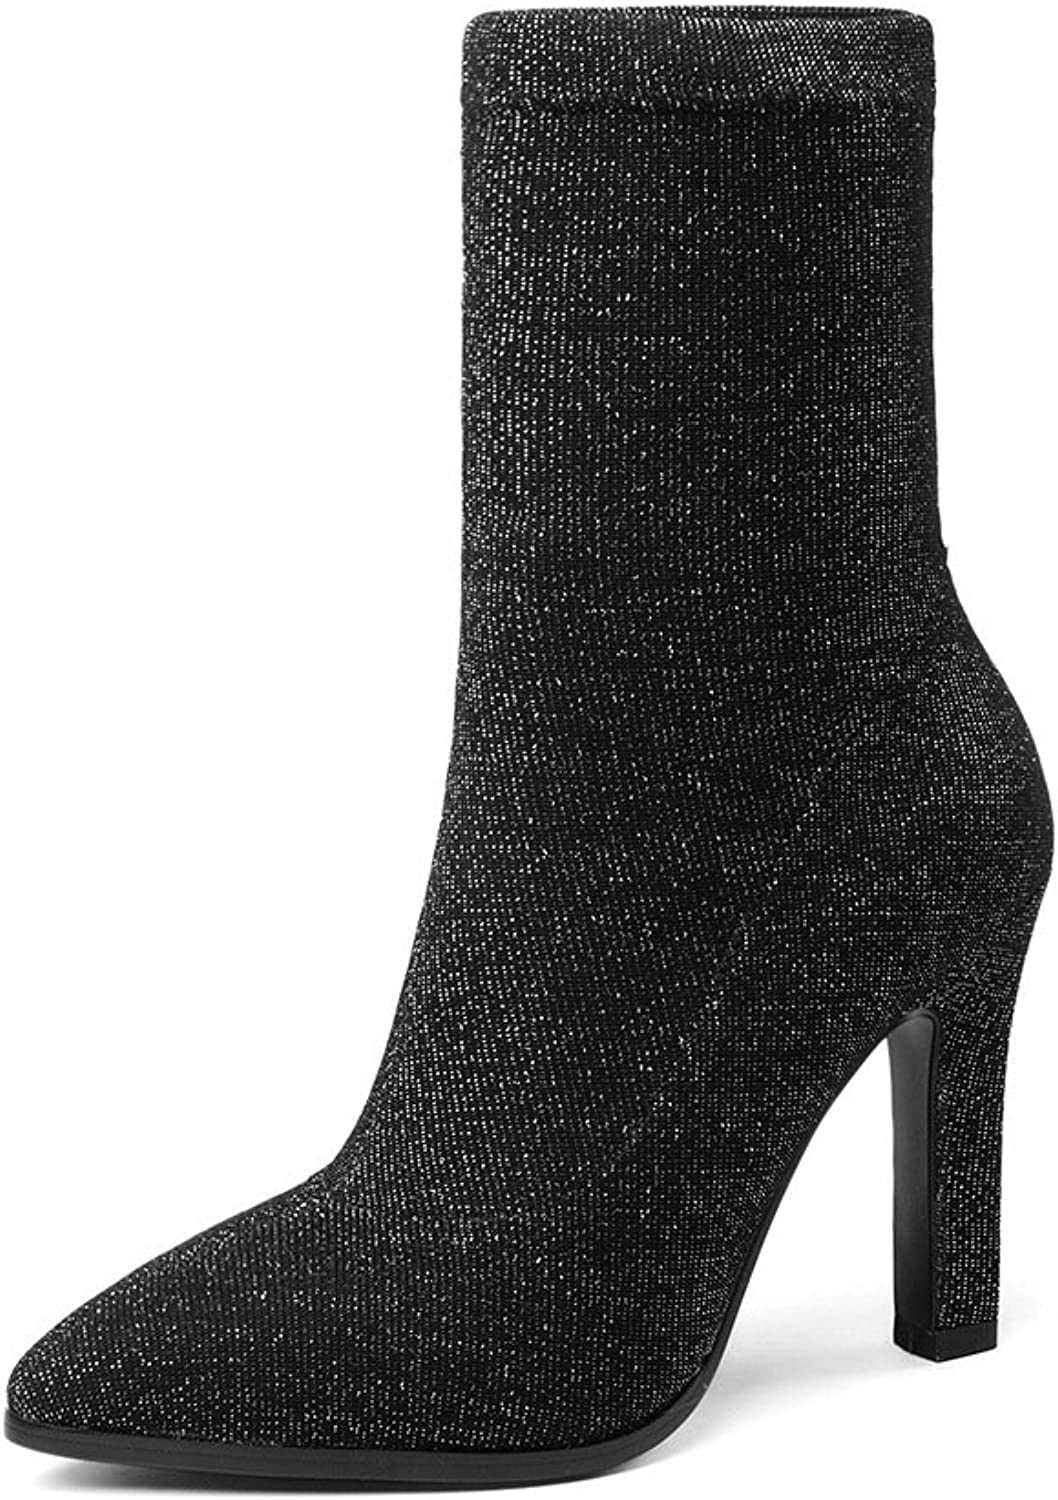 Wetkiss Sexy Women's Stretch Ankle Bootie high Heels Pointy Toe Socks Boots shoes Woman